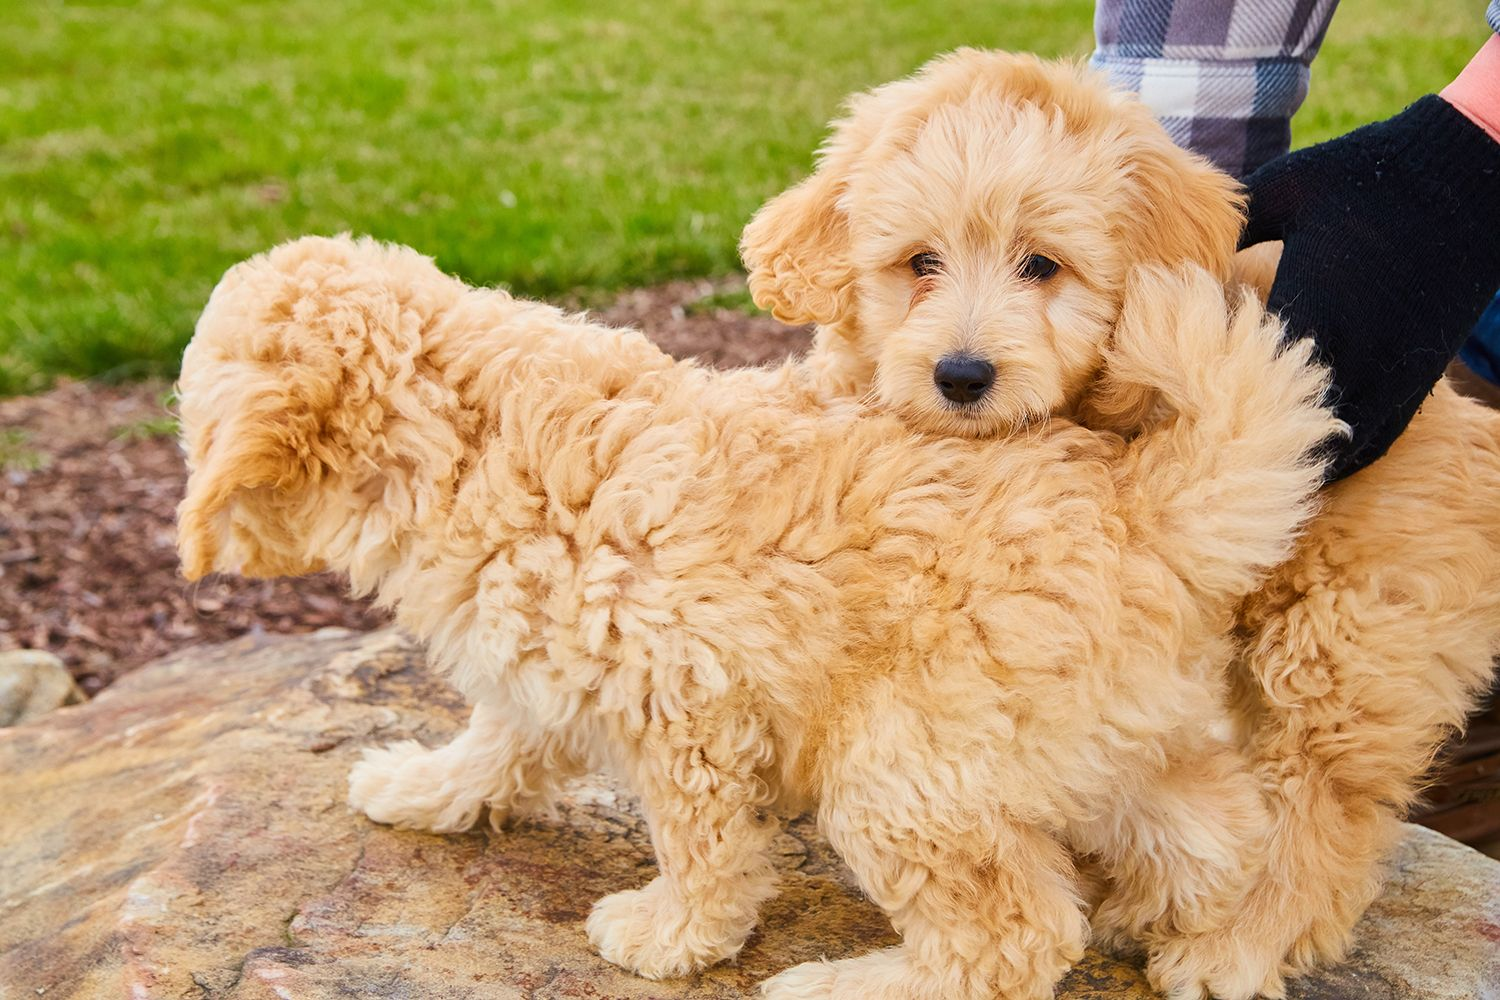 We Are Some Adorable And Very Cuddly F1 Mini Goldendoodle Puppies Could You See Having One Or More Of Us Mini Goldendoodle Puppies Goldendoodle Puppy Puppies